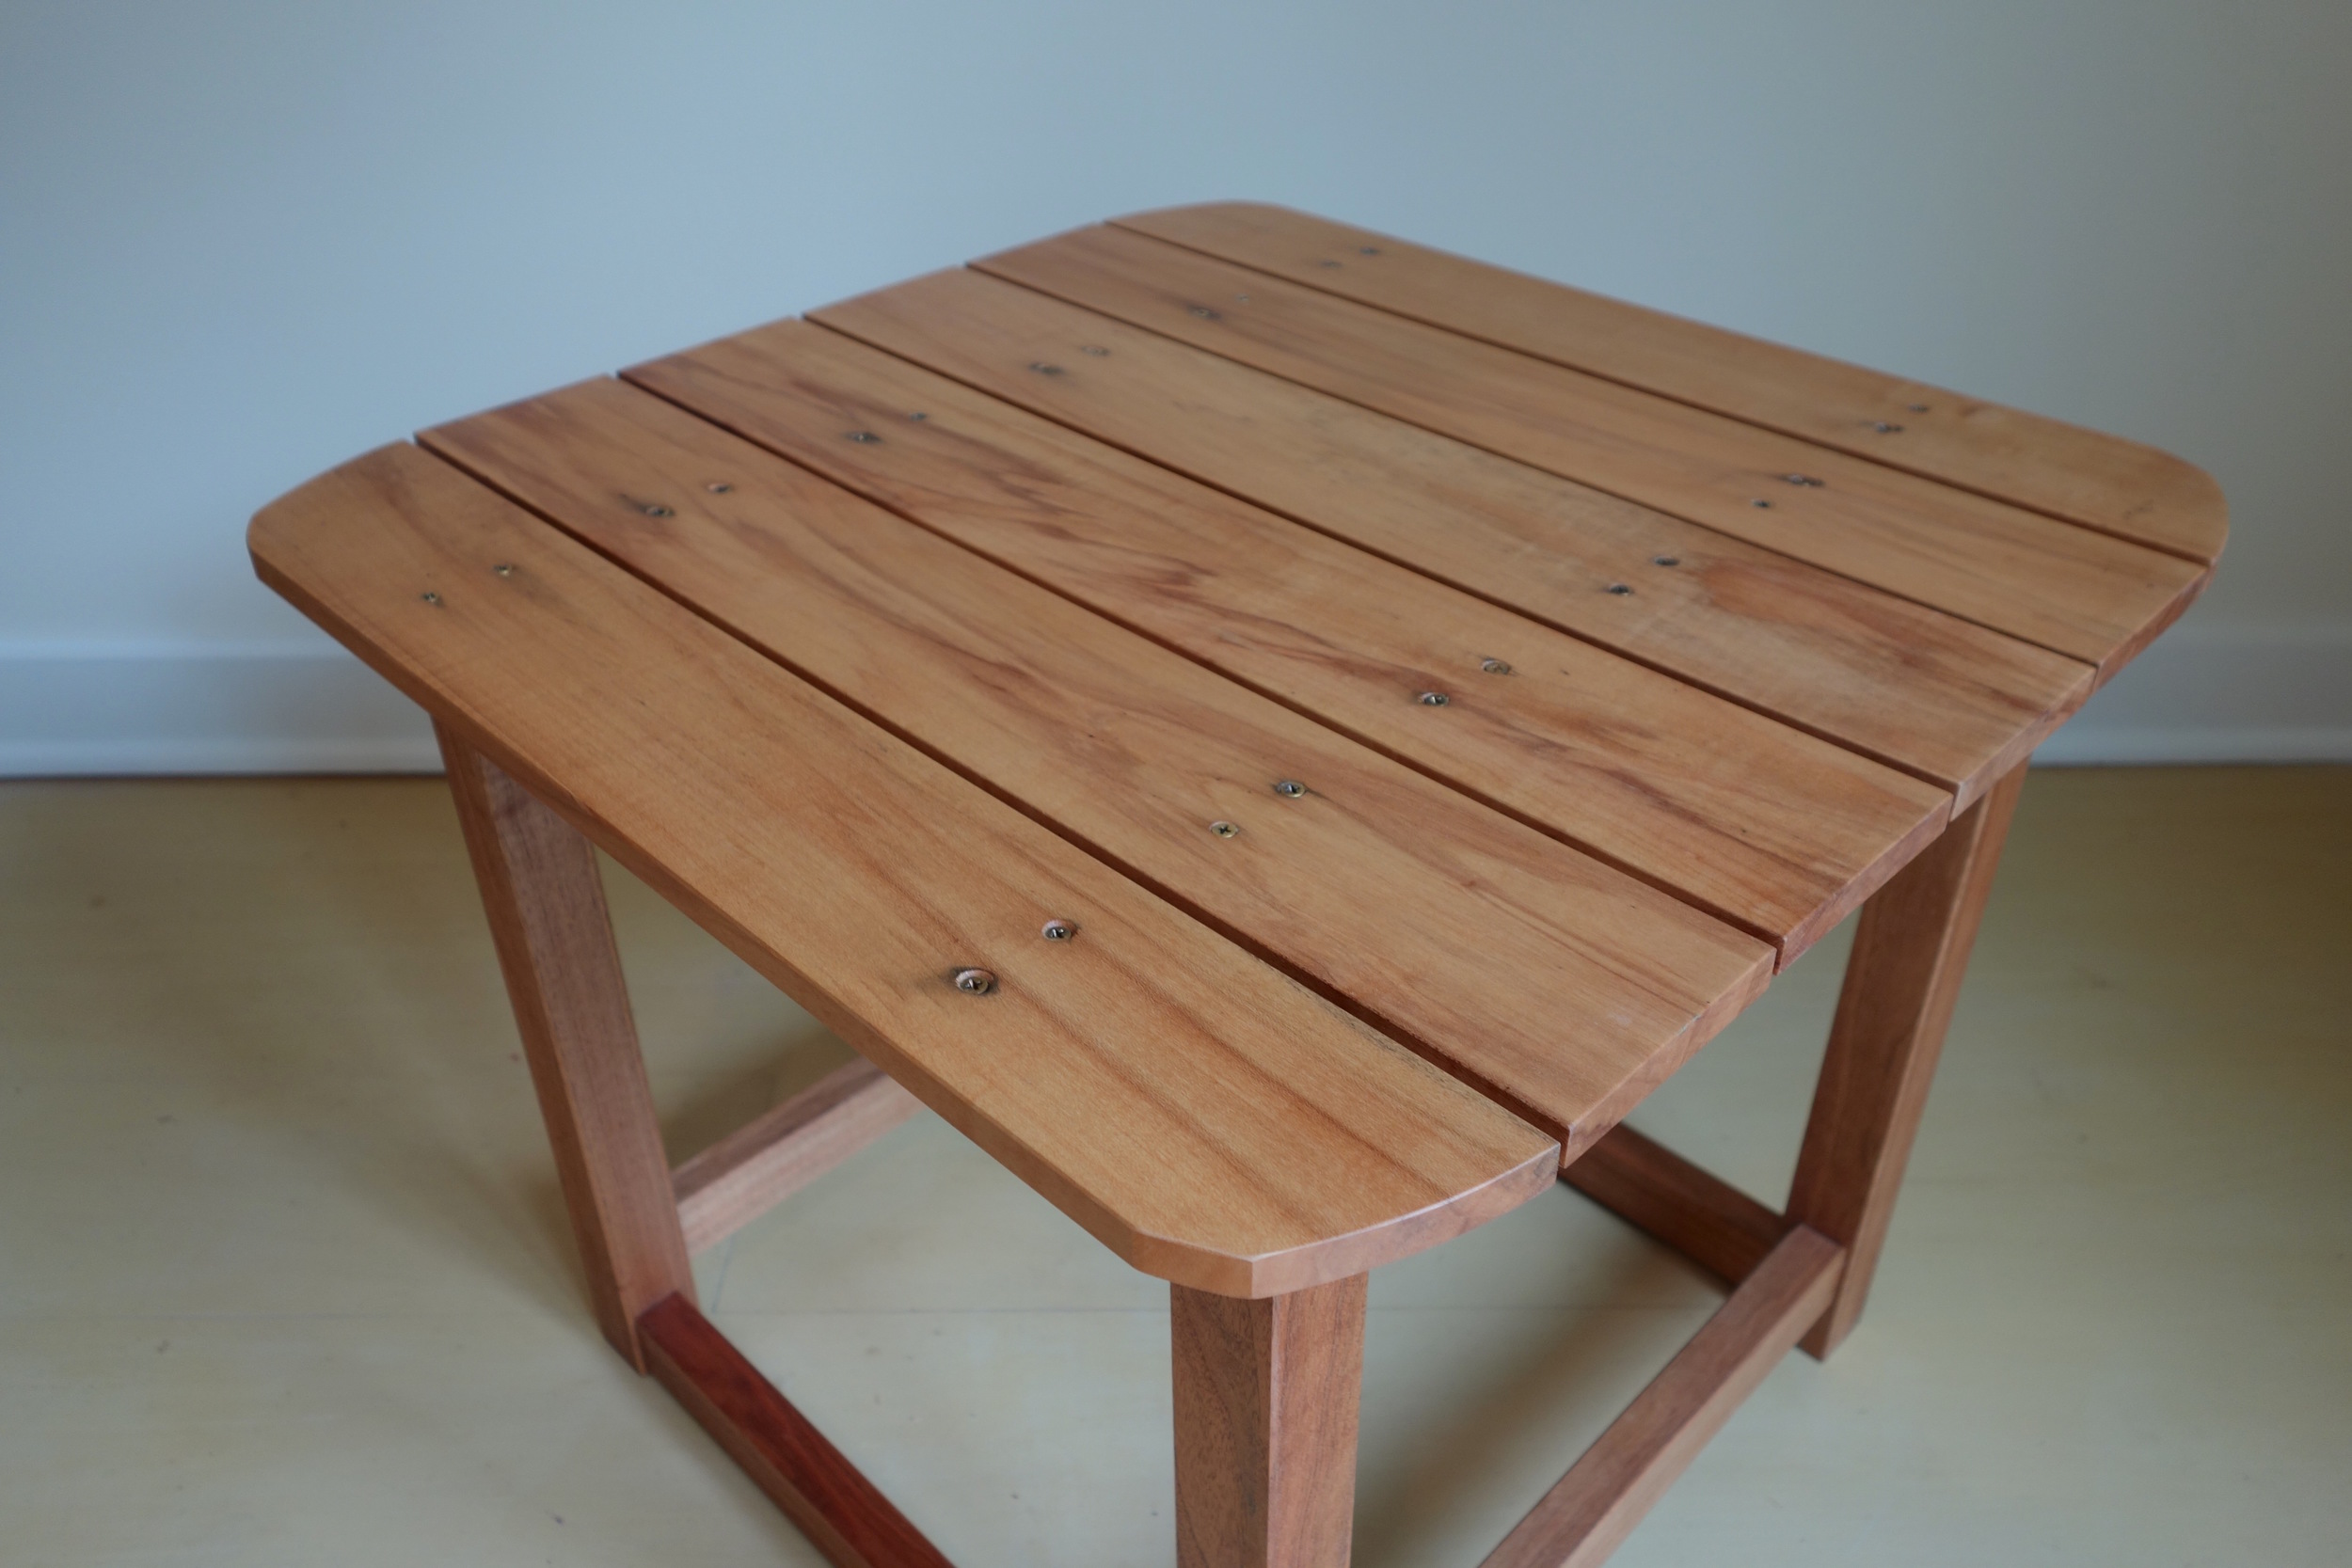 Cubie_Outdoor_Table_3.jpg